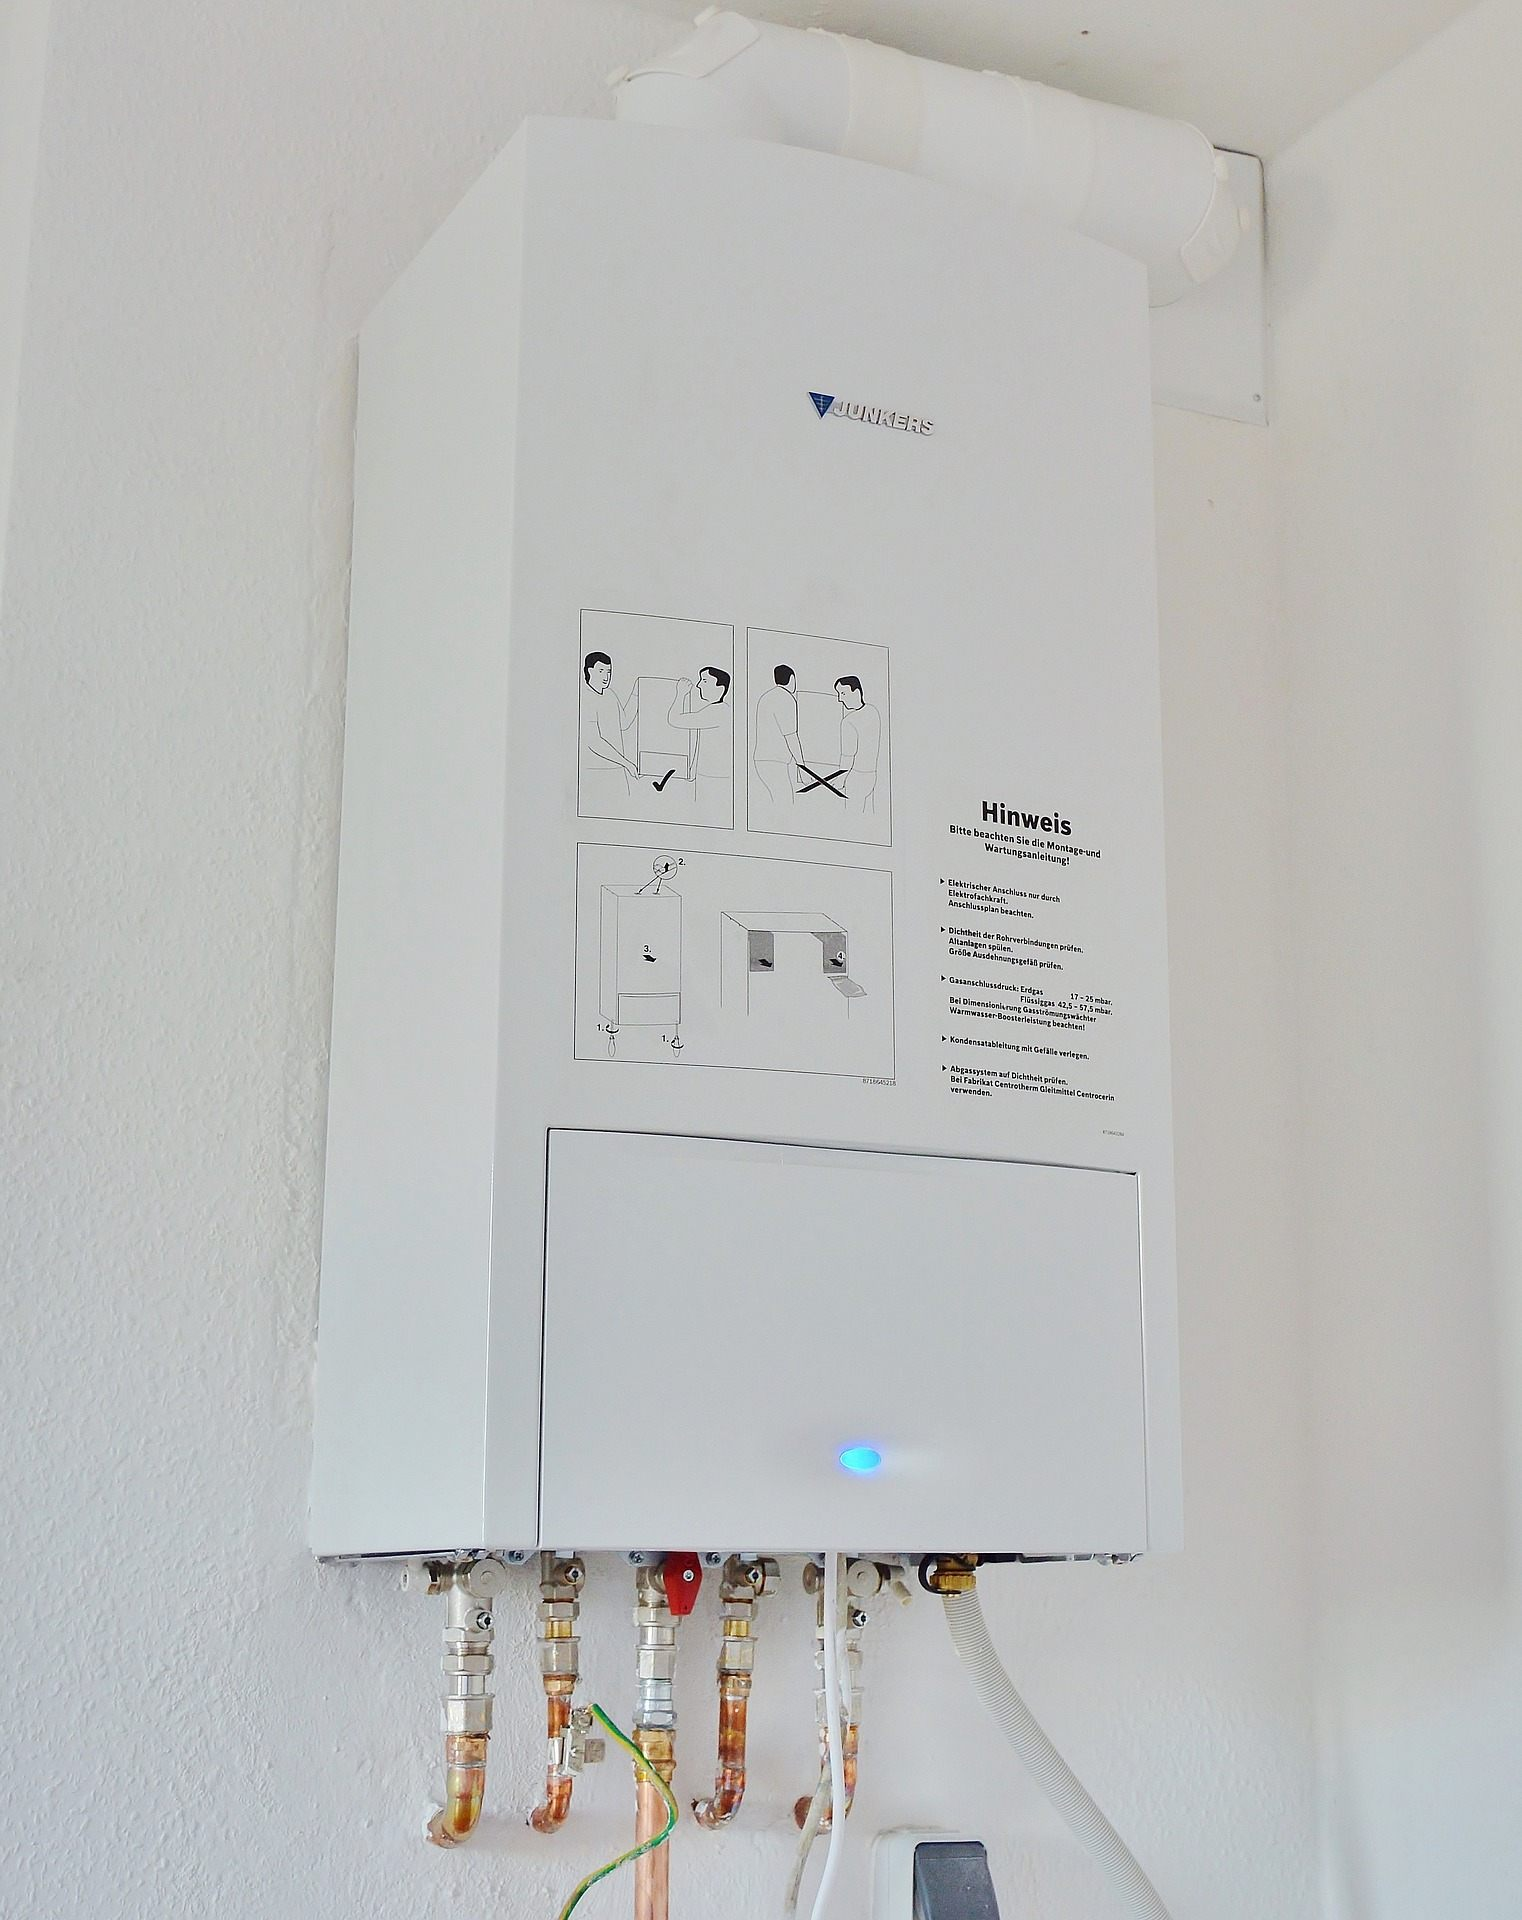 7 Reasons Why You Should Move to a Tankless Water Heater